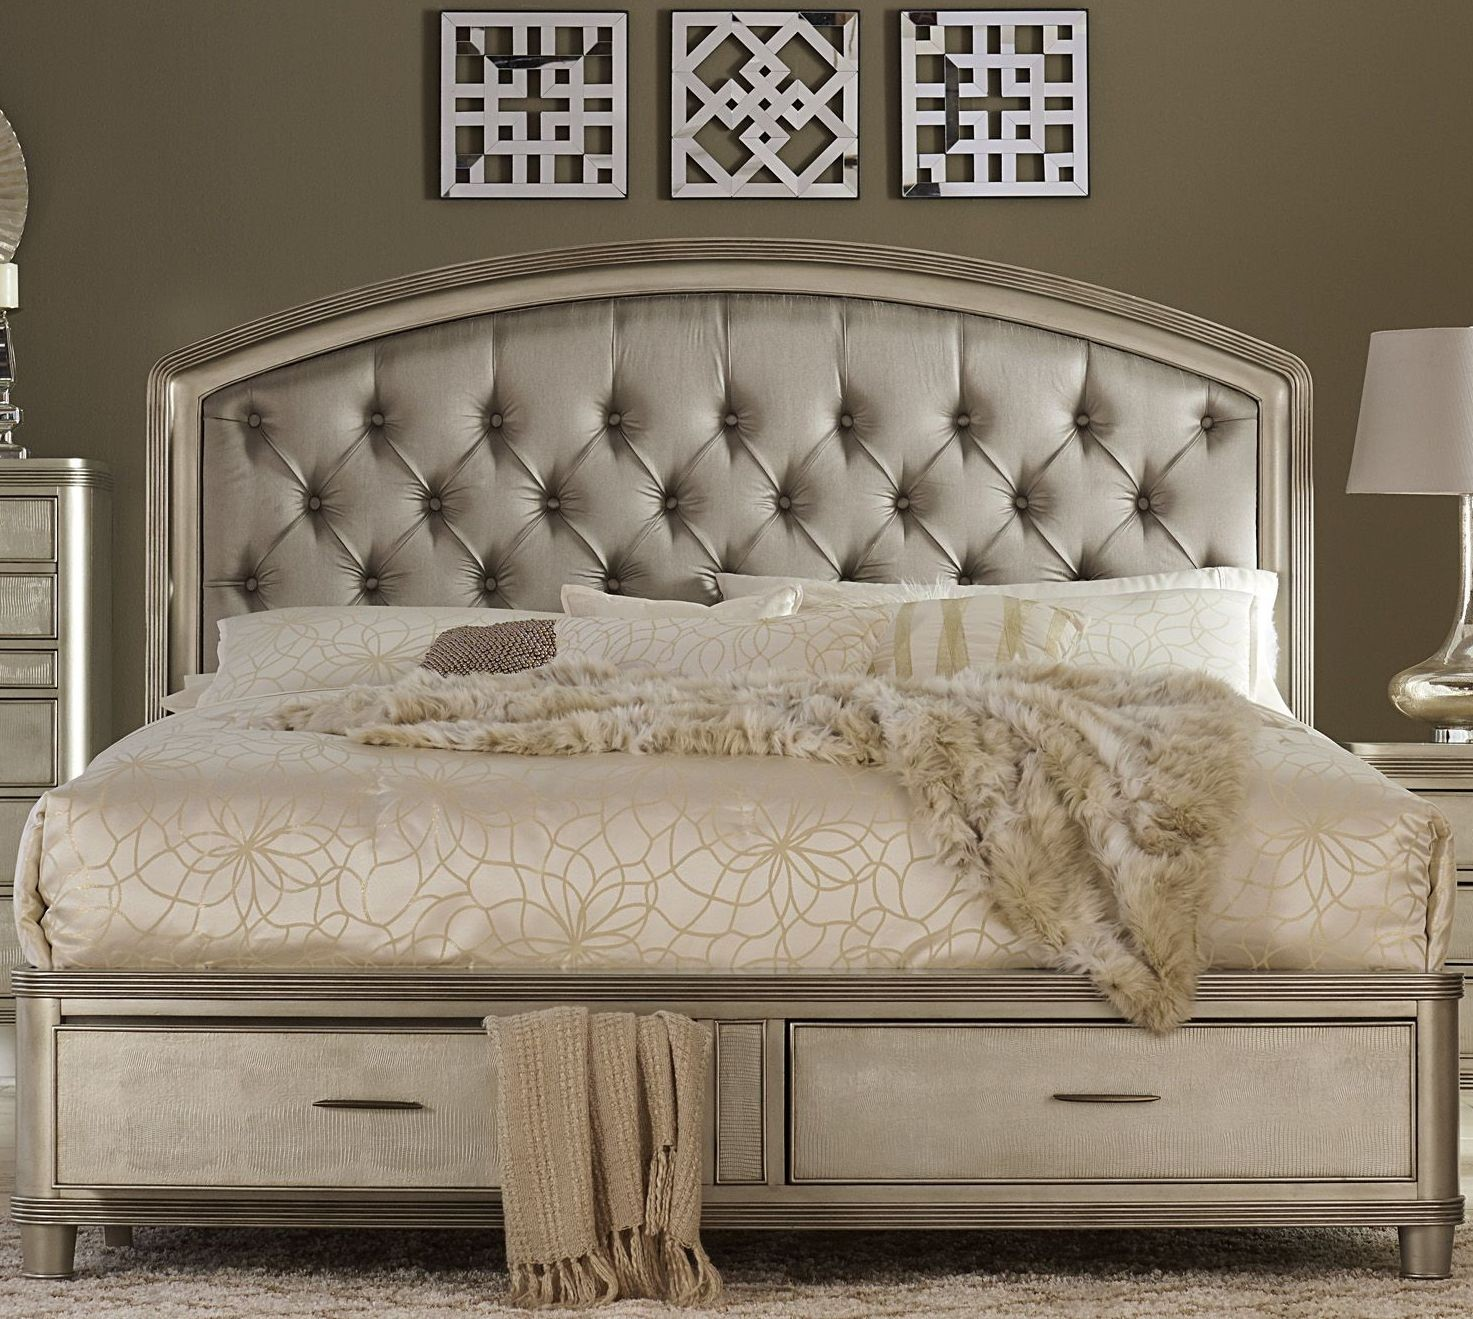 Tanchampagne Cal King Upholstered Platform Bed From